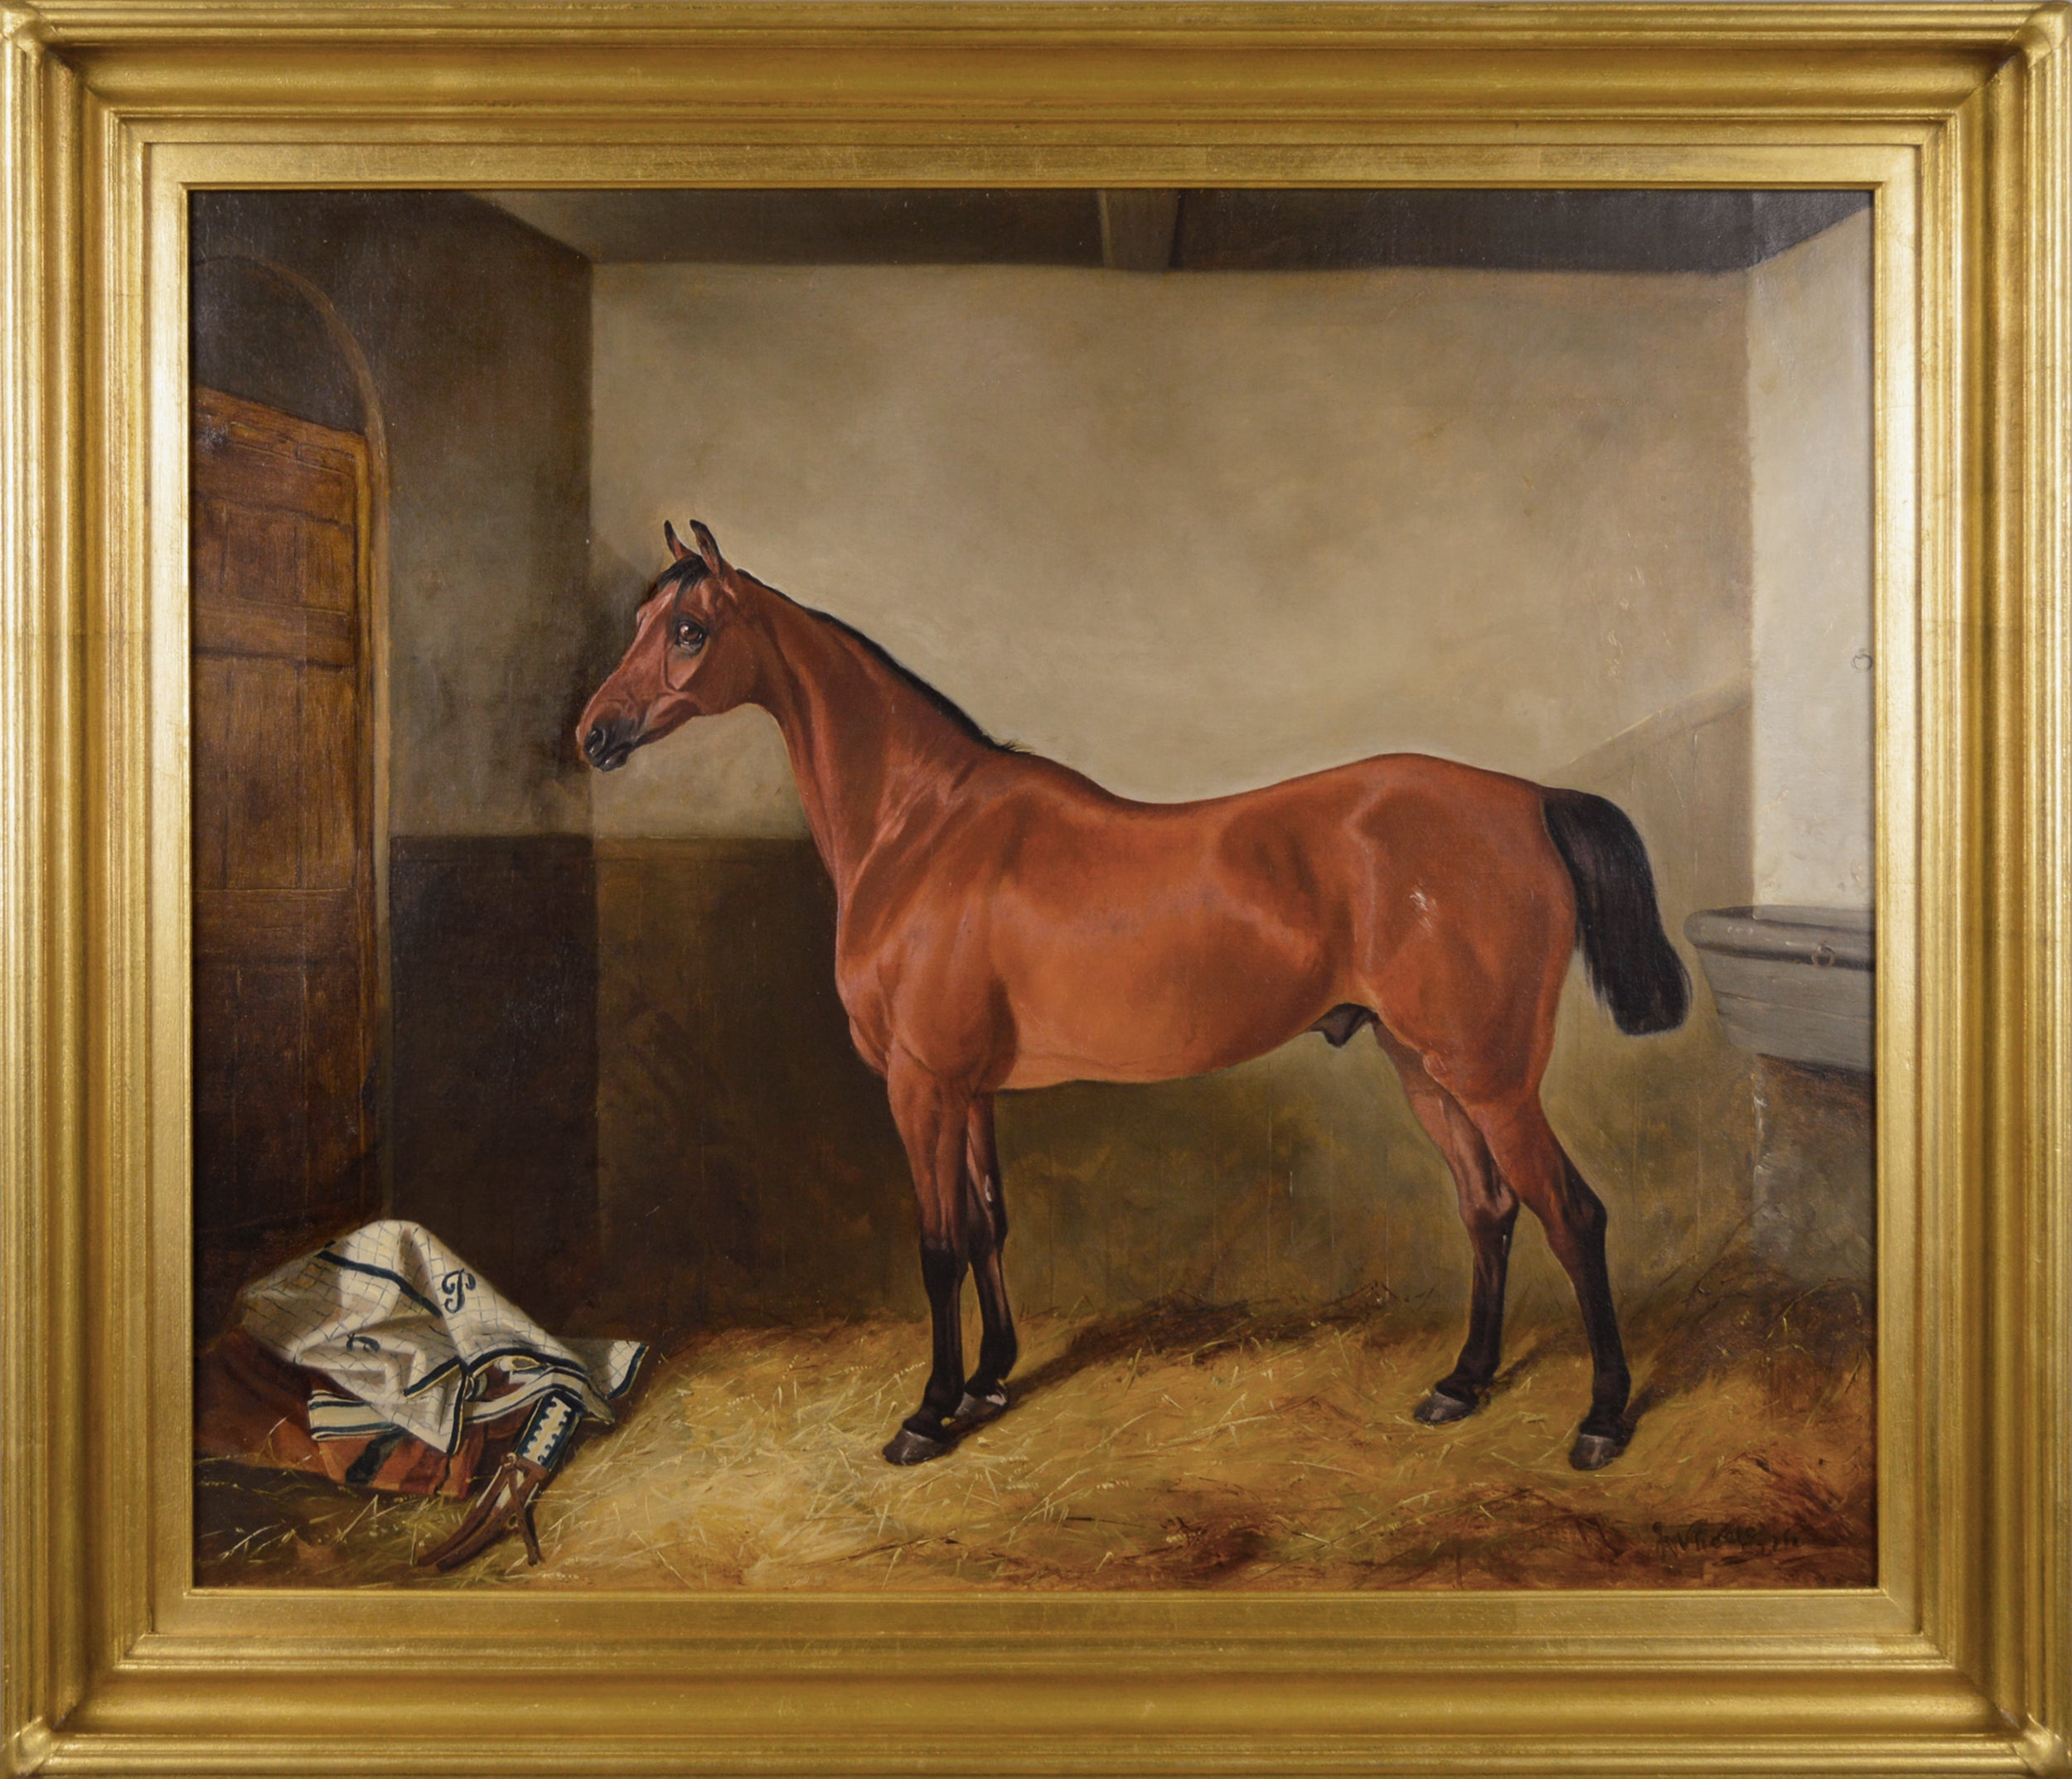 YORKSHIRE HUNTER HORSES EQUESTRIAN HUNTING ART PAINTING REAL CANVAS PRINT